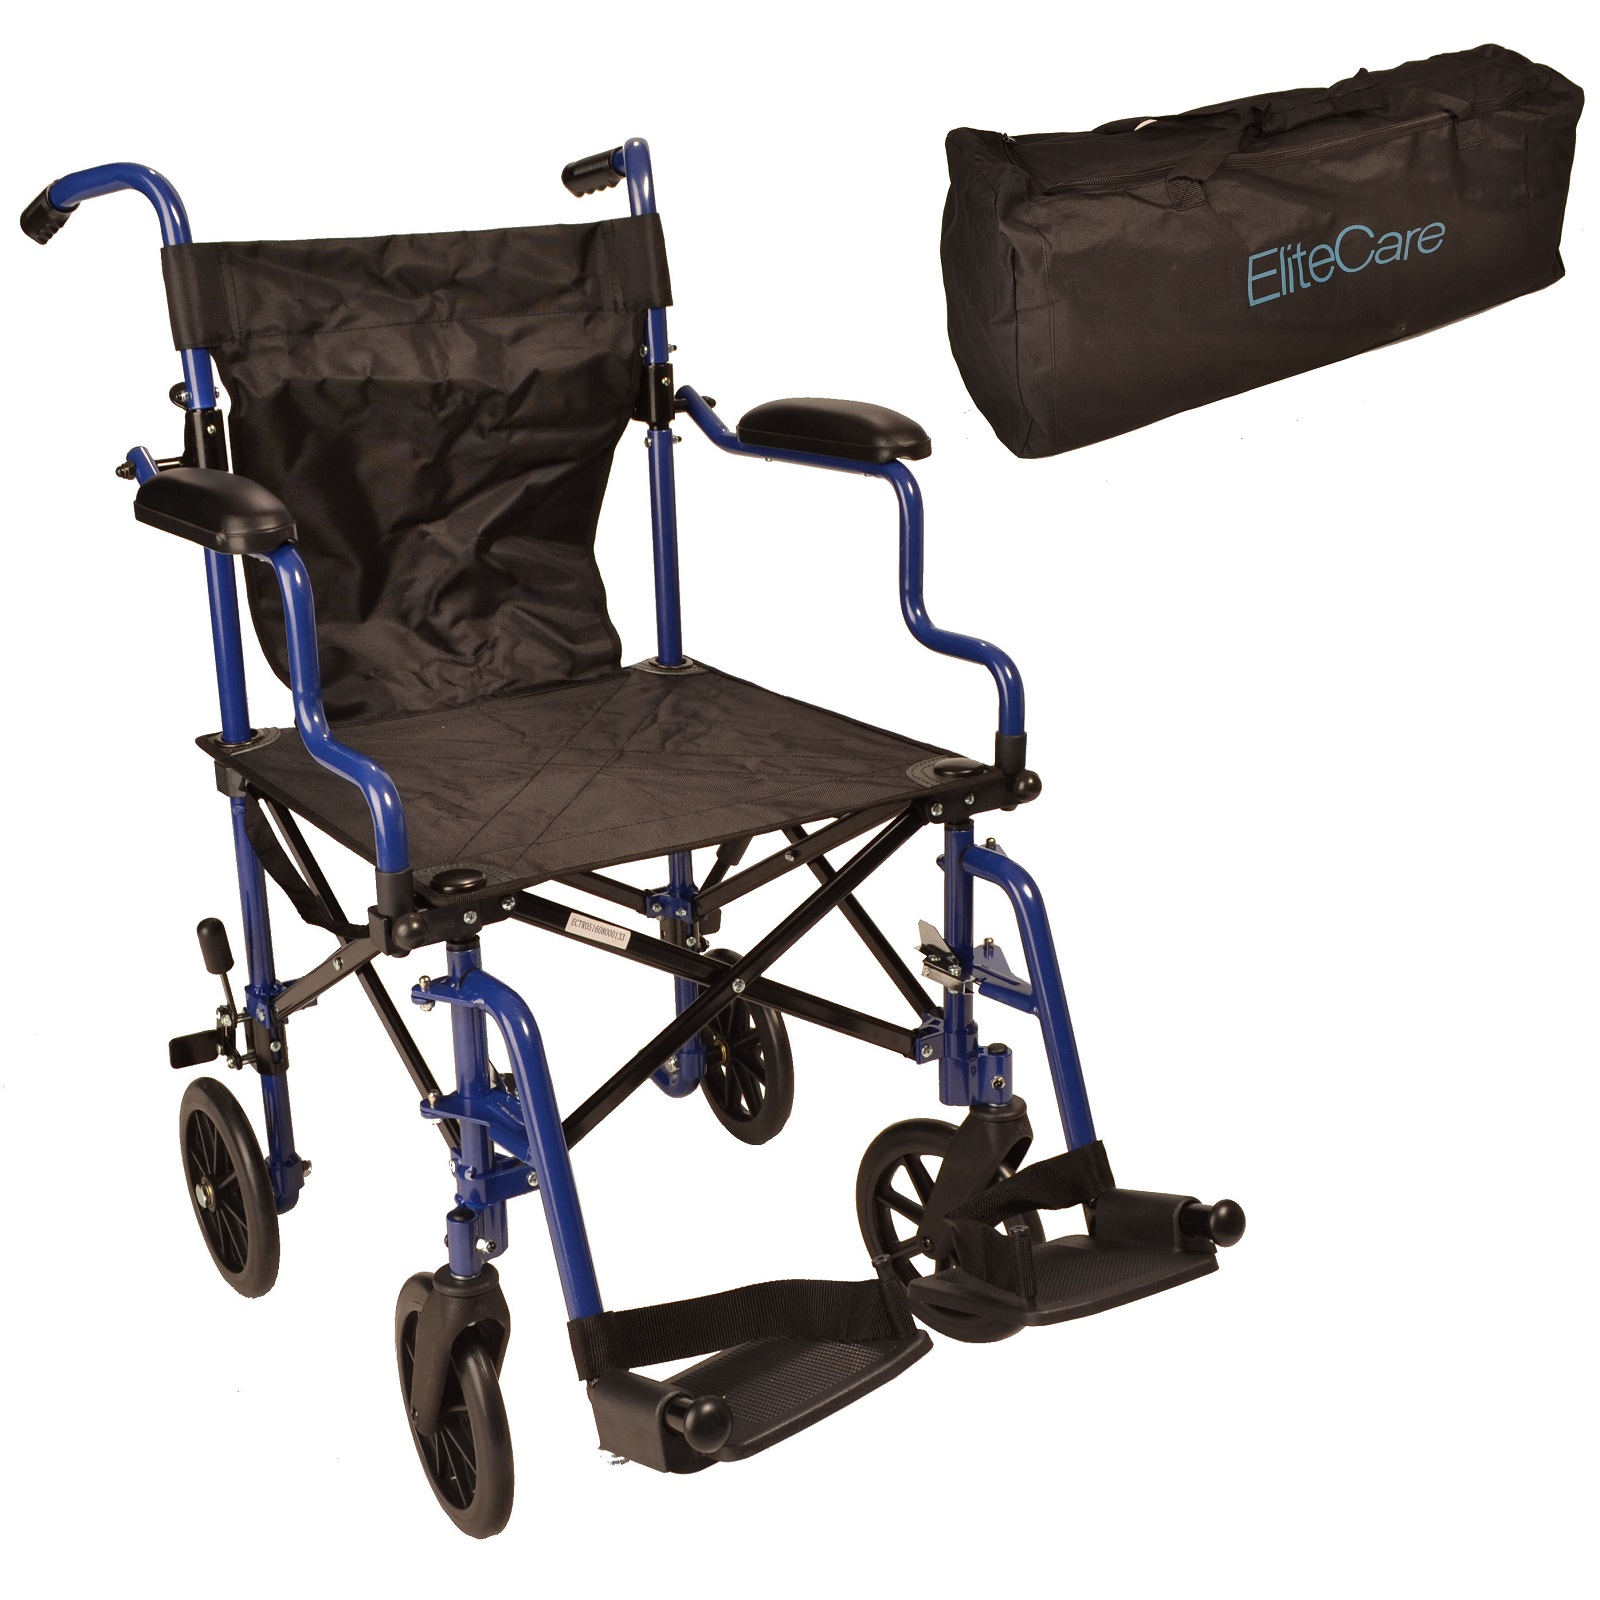 lightweight folding chair in a bag blue rhino covers wheelchair and ectr05 elite